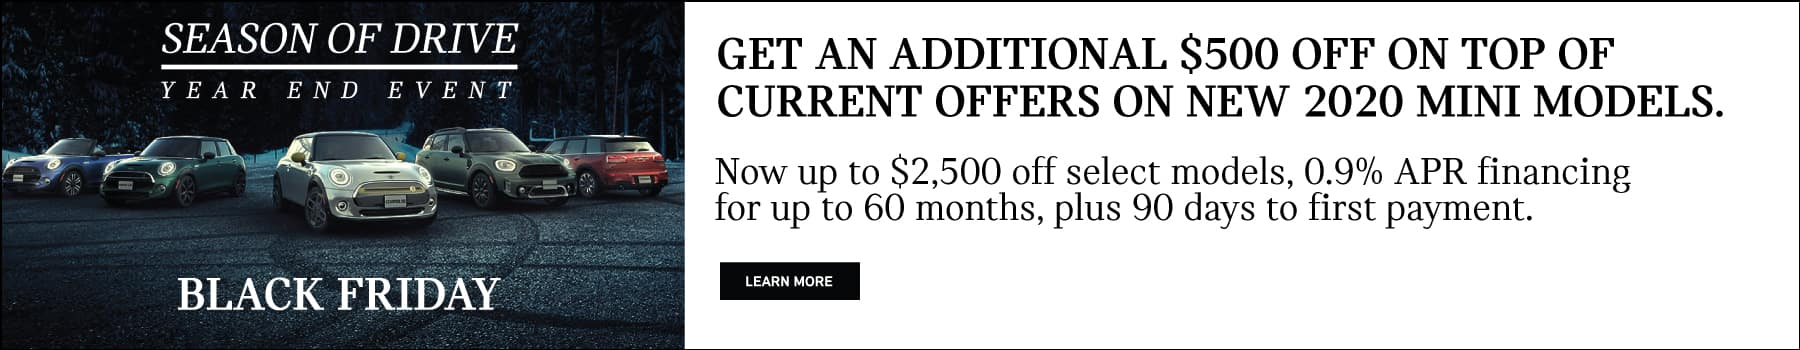 GET AN ADDITIONAL $500 ON TOP OF CURRENT OFFERS ON NEW 2020 MODELS. Up to $2,500 off select models, 0.9% APR financing for up to 60 months, plus 90 days to first payment